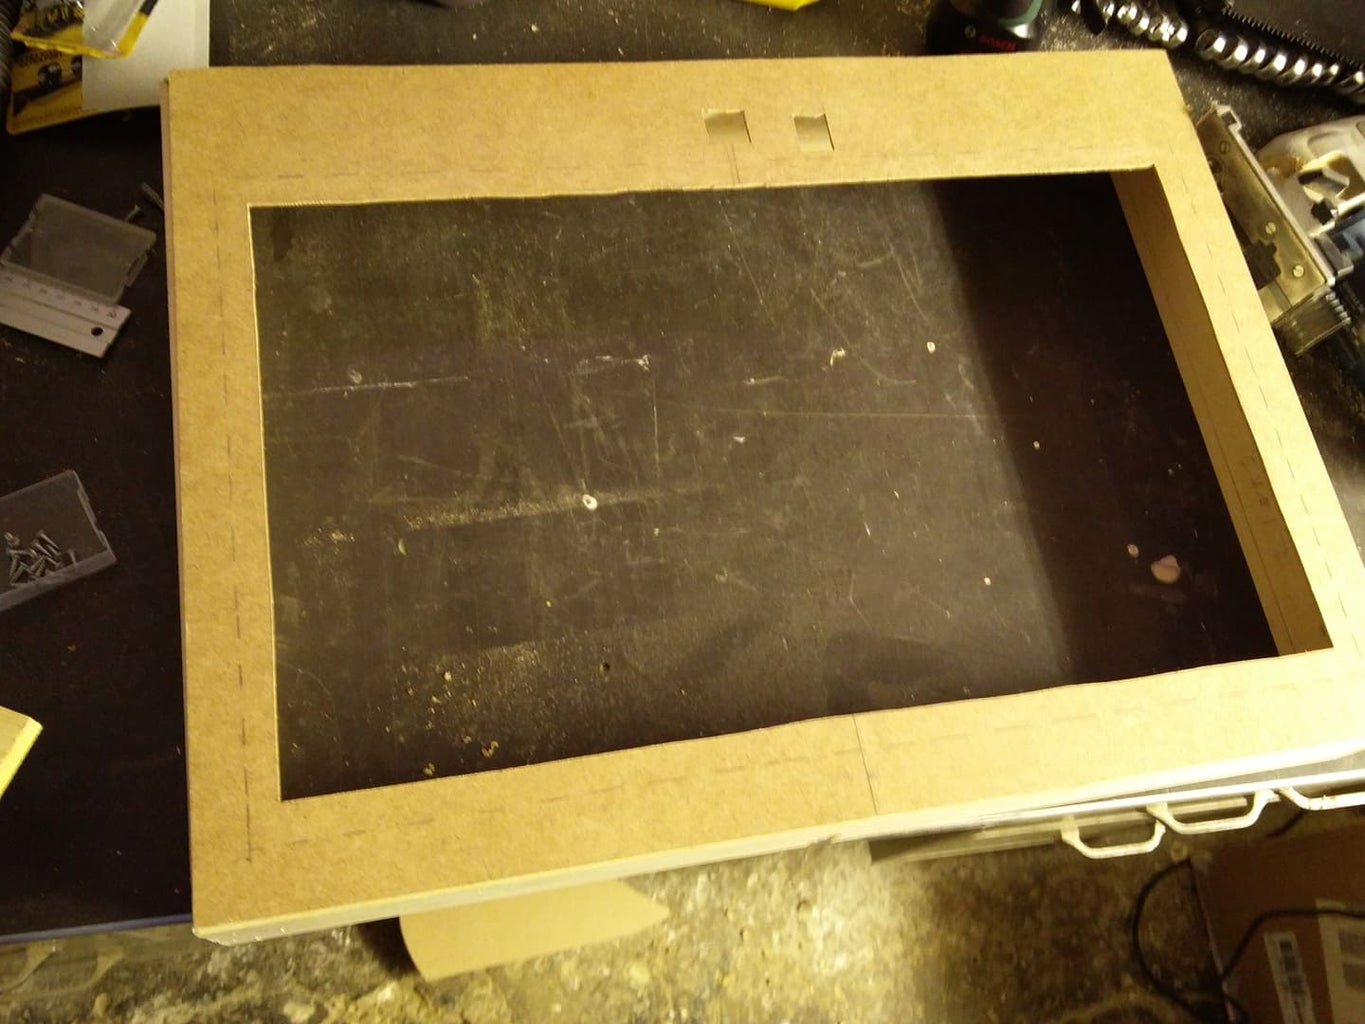 Creating the Smart Mirror